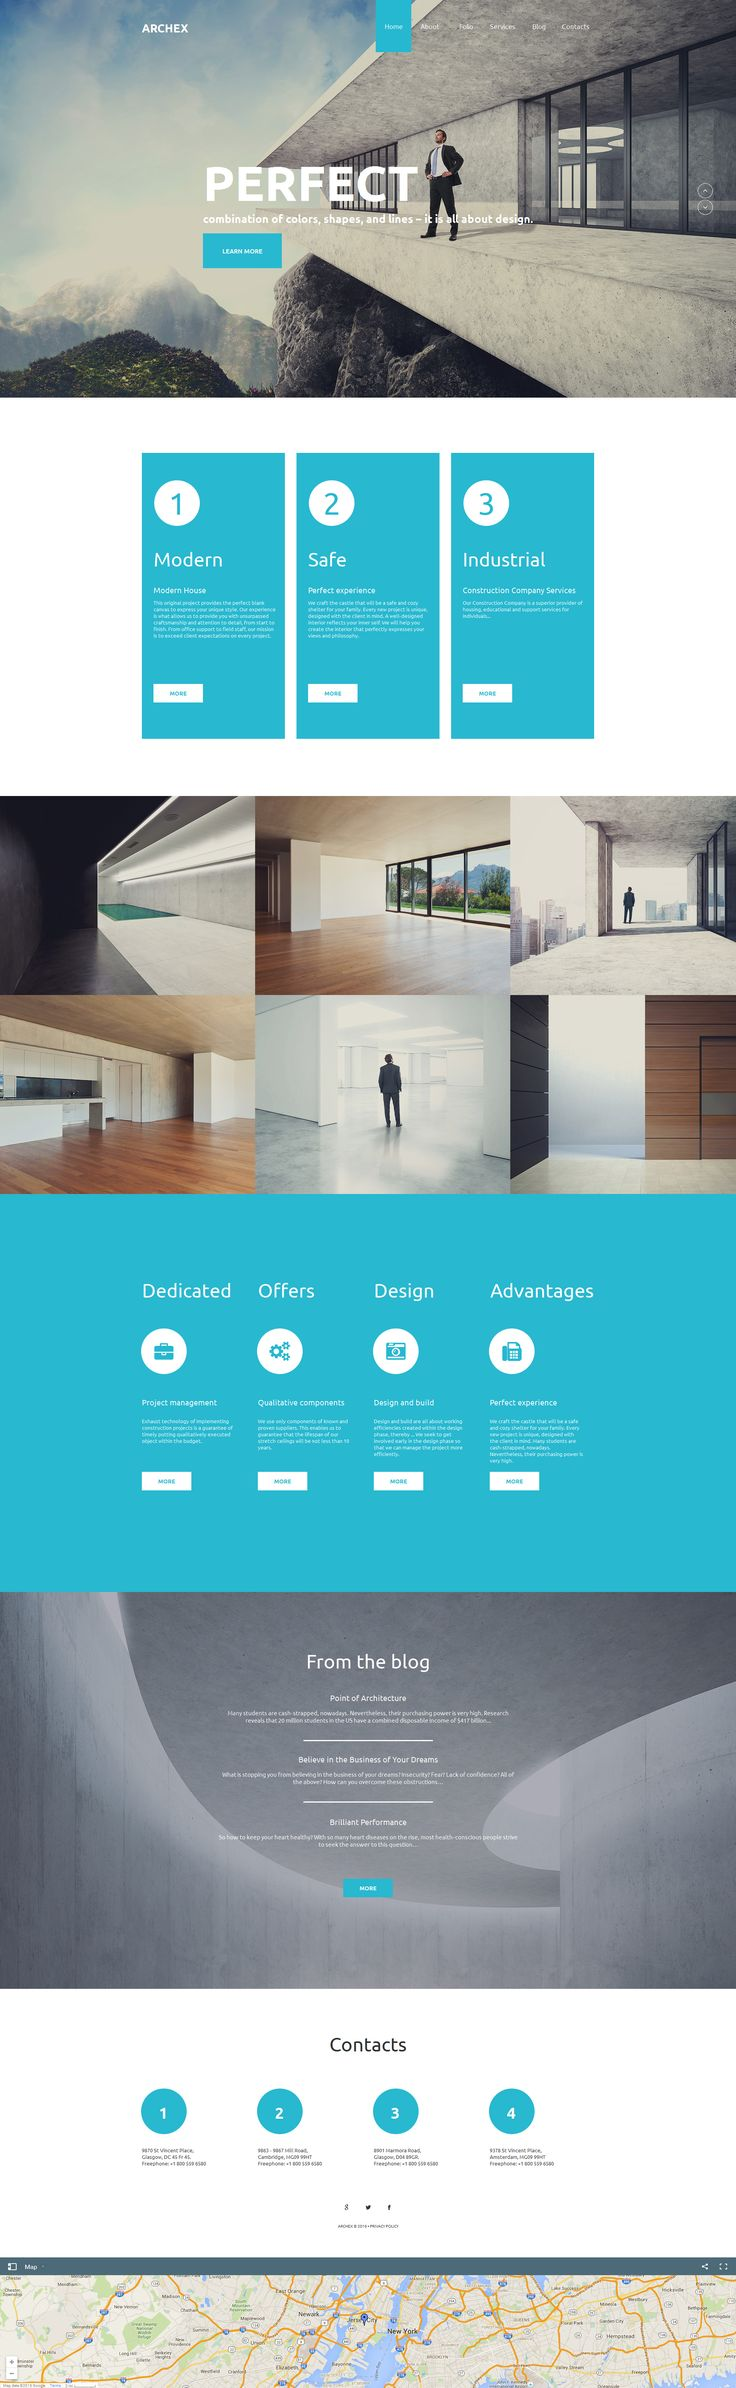 Architecture Moto CMS HTML Template #58473 http://www.templatemonster.com/moto-cms-html-templates/58473.html